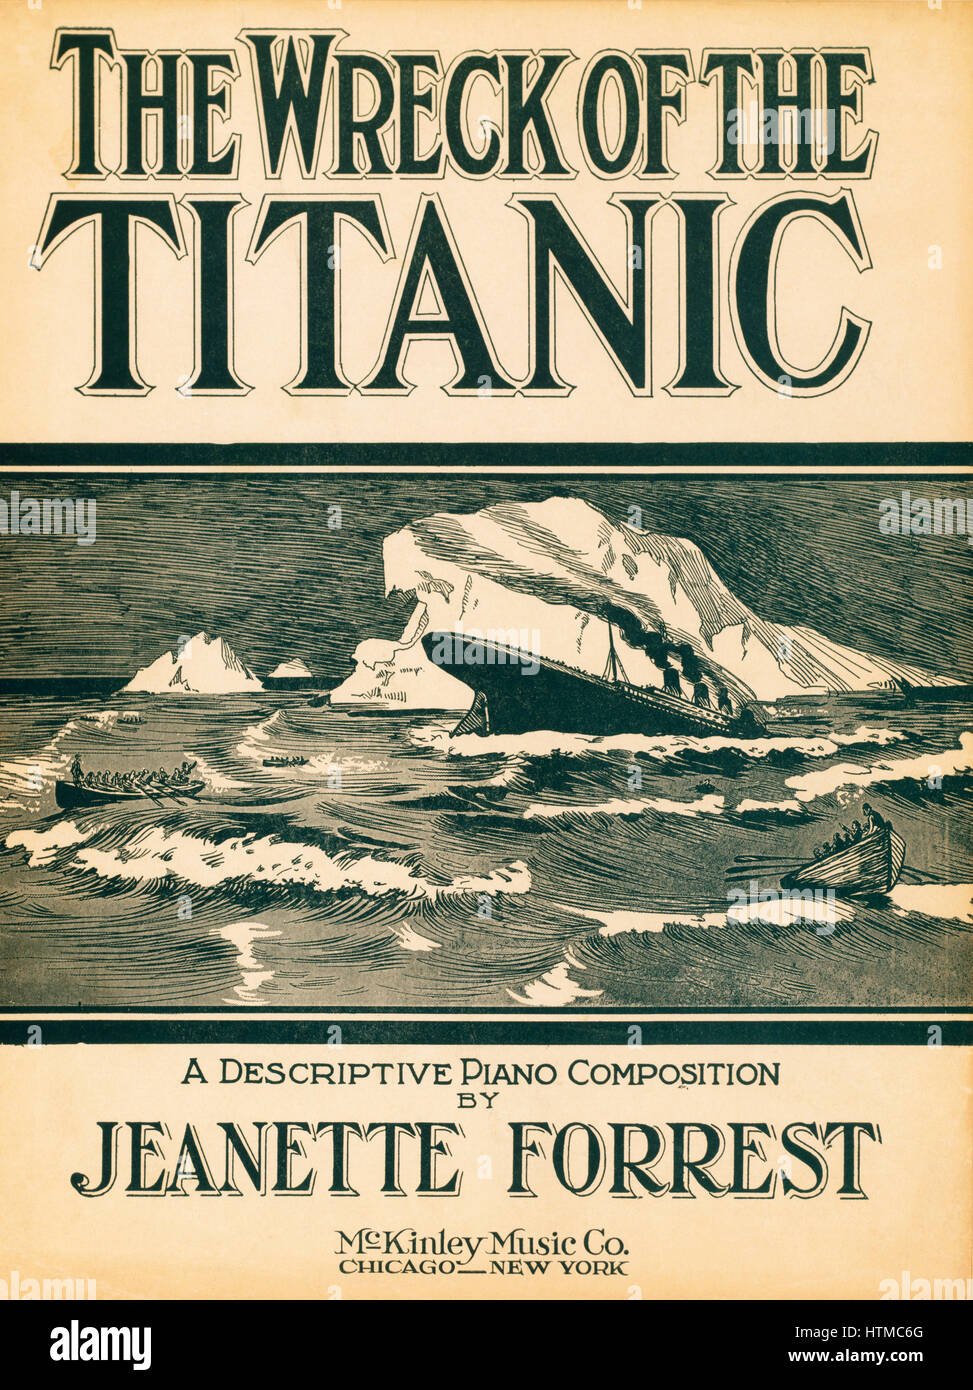 The Wreck of the Titanic, a descriptive piano composition by Jeanette Forrest. Published 1912. Scores of musical - Stock Image